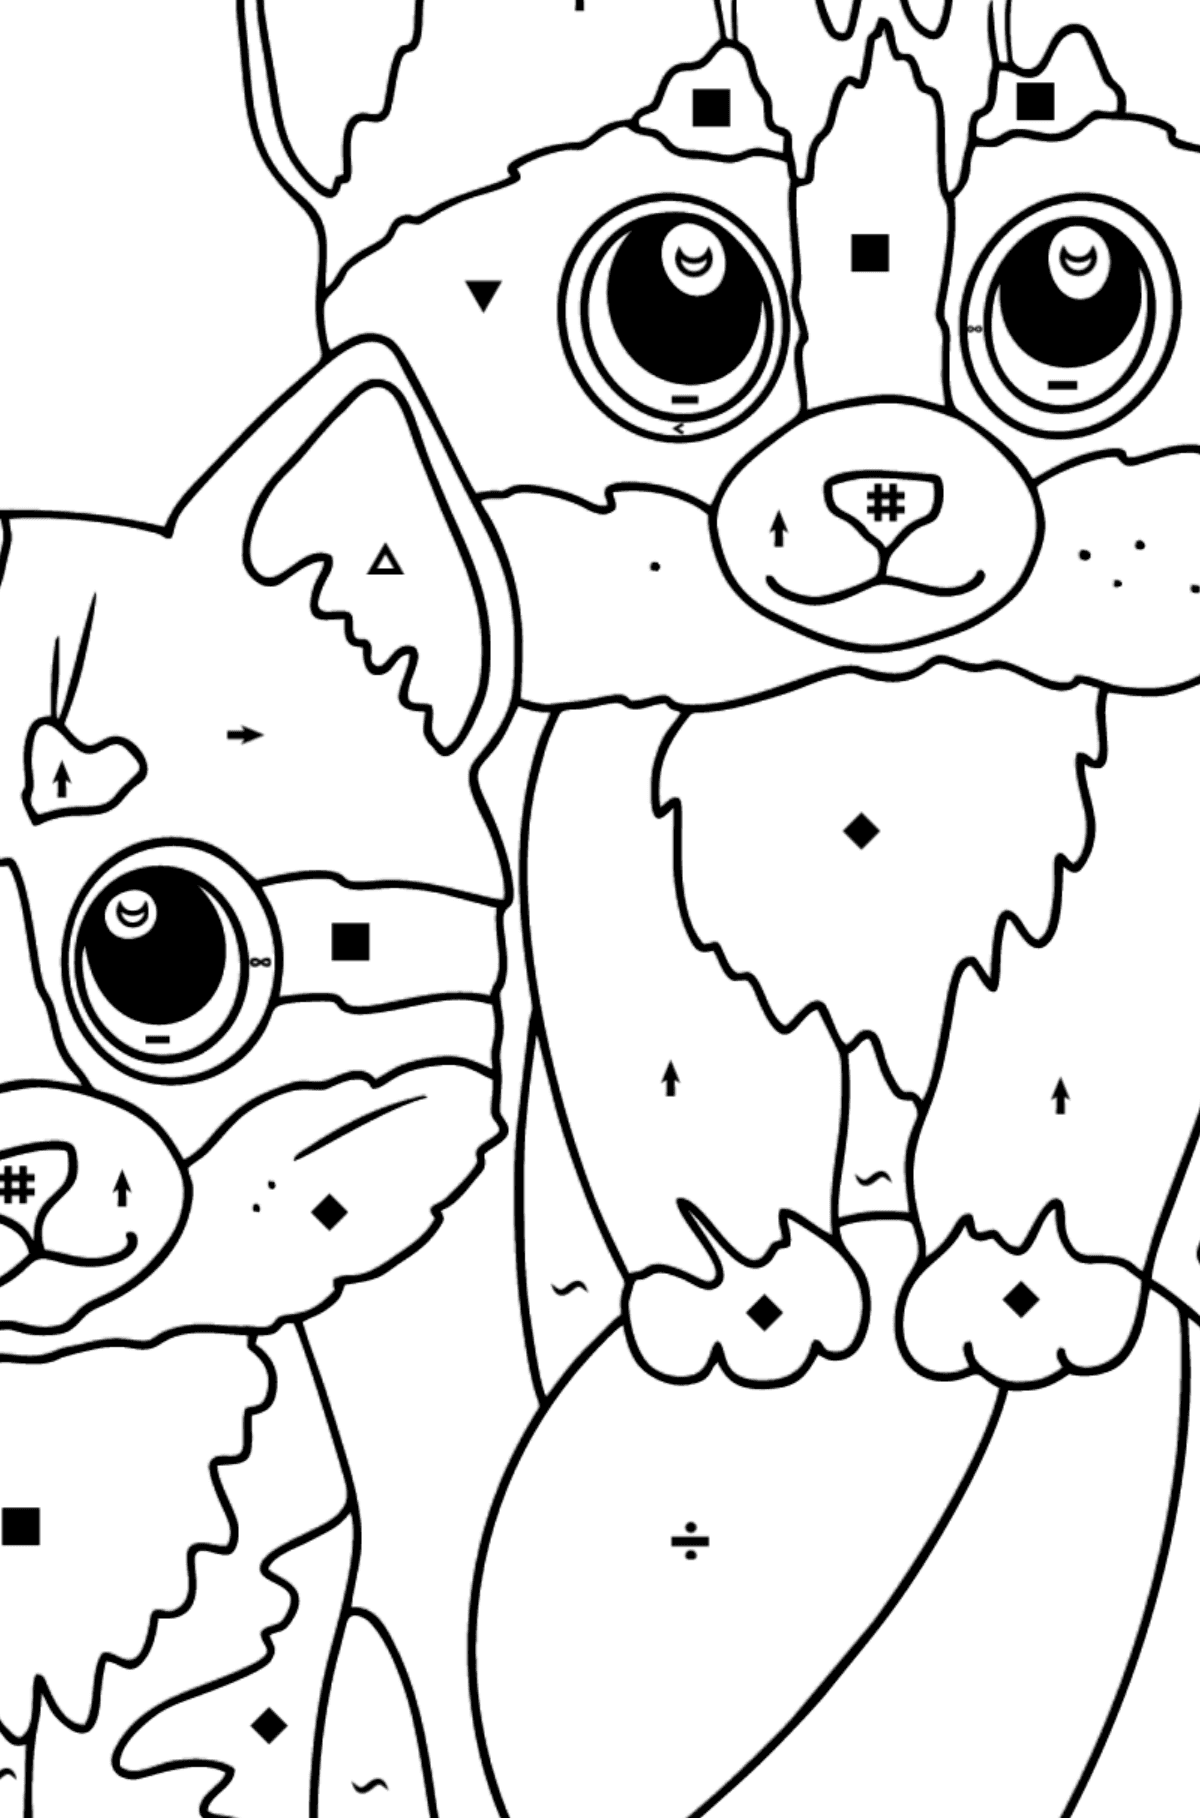 Coloring Page - Two Kittens with a Ball - Coloring by Symbols for Kids